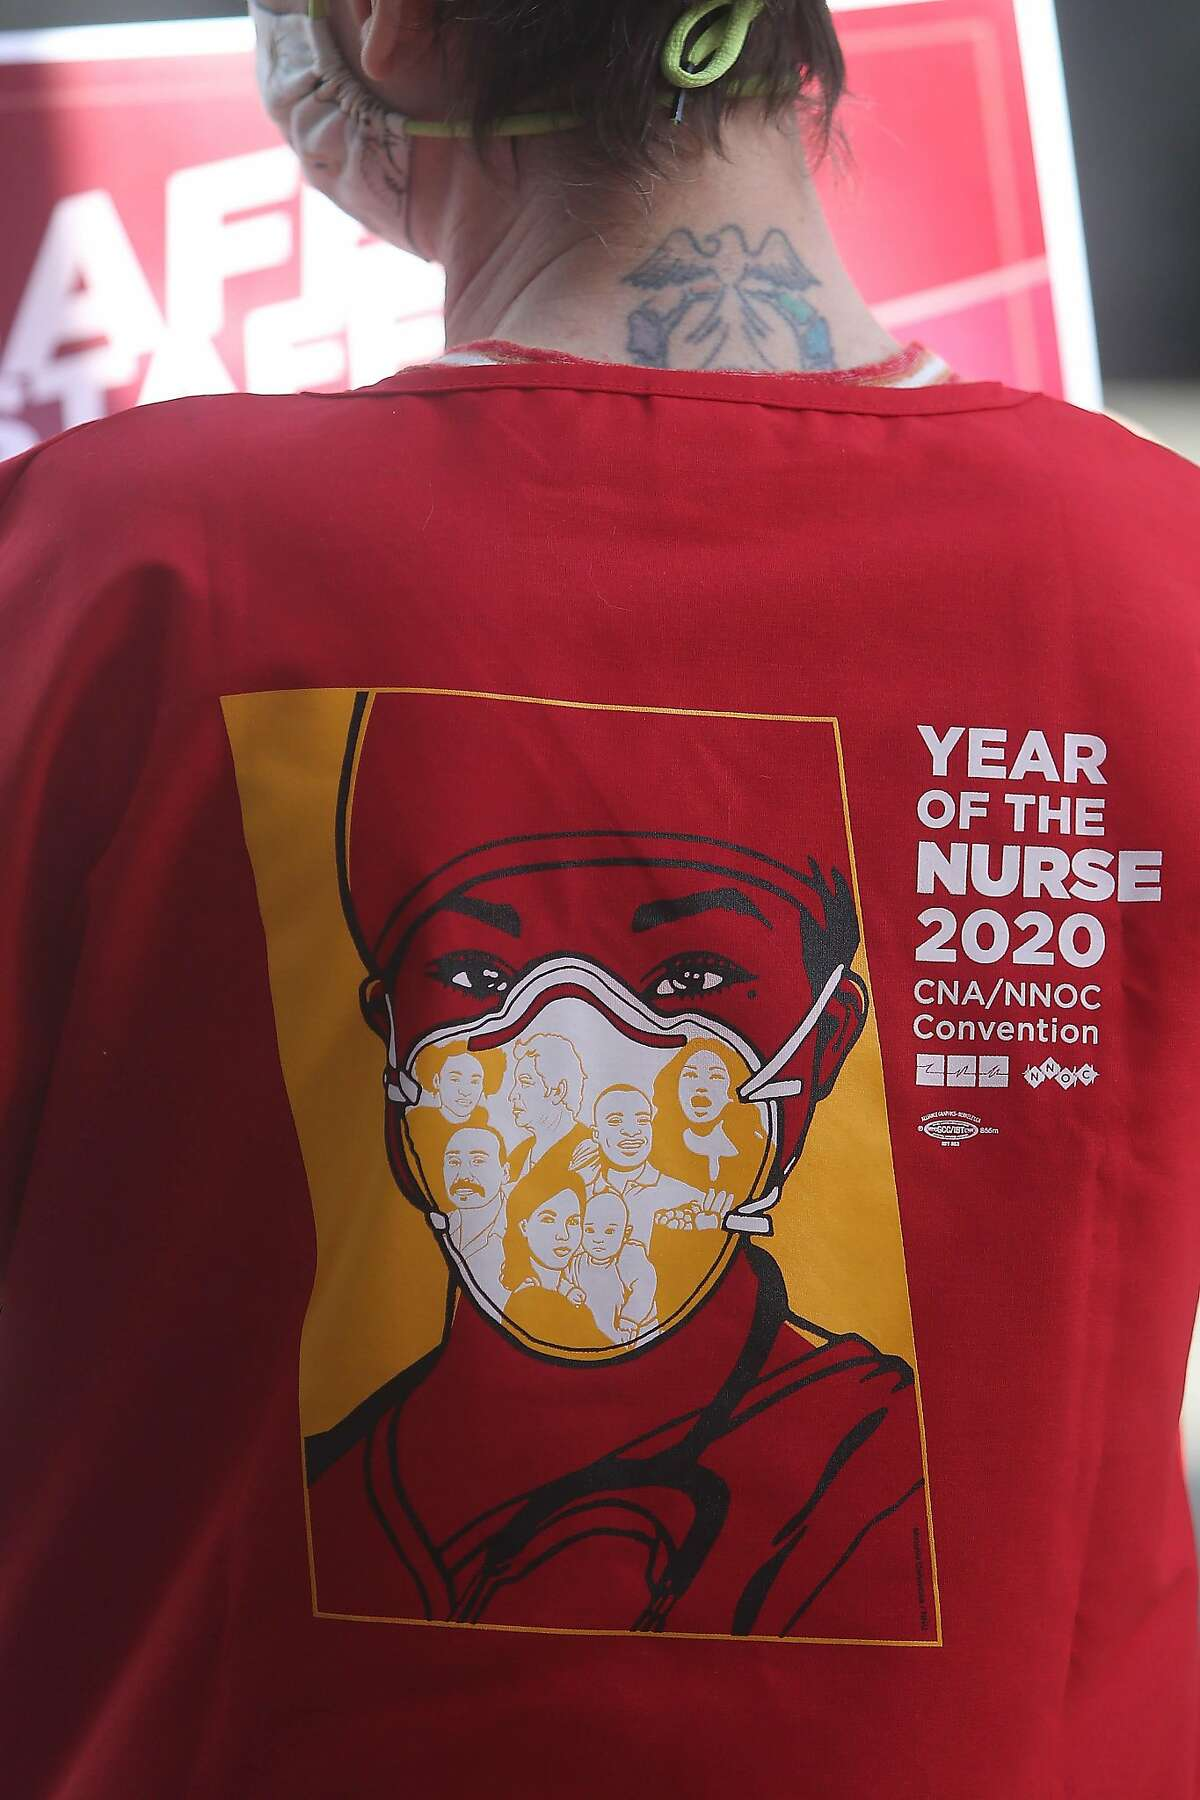 CPMC nurse Katie VanSchoick's top reads Year of the Nurse as she protests the waivers.